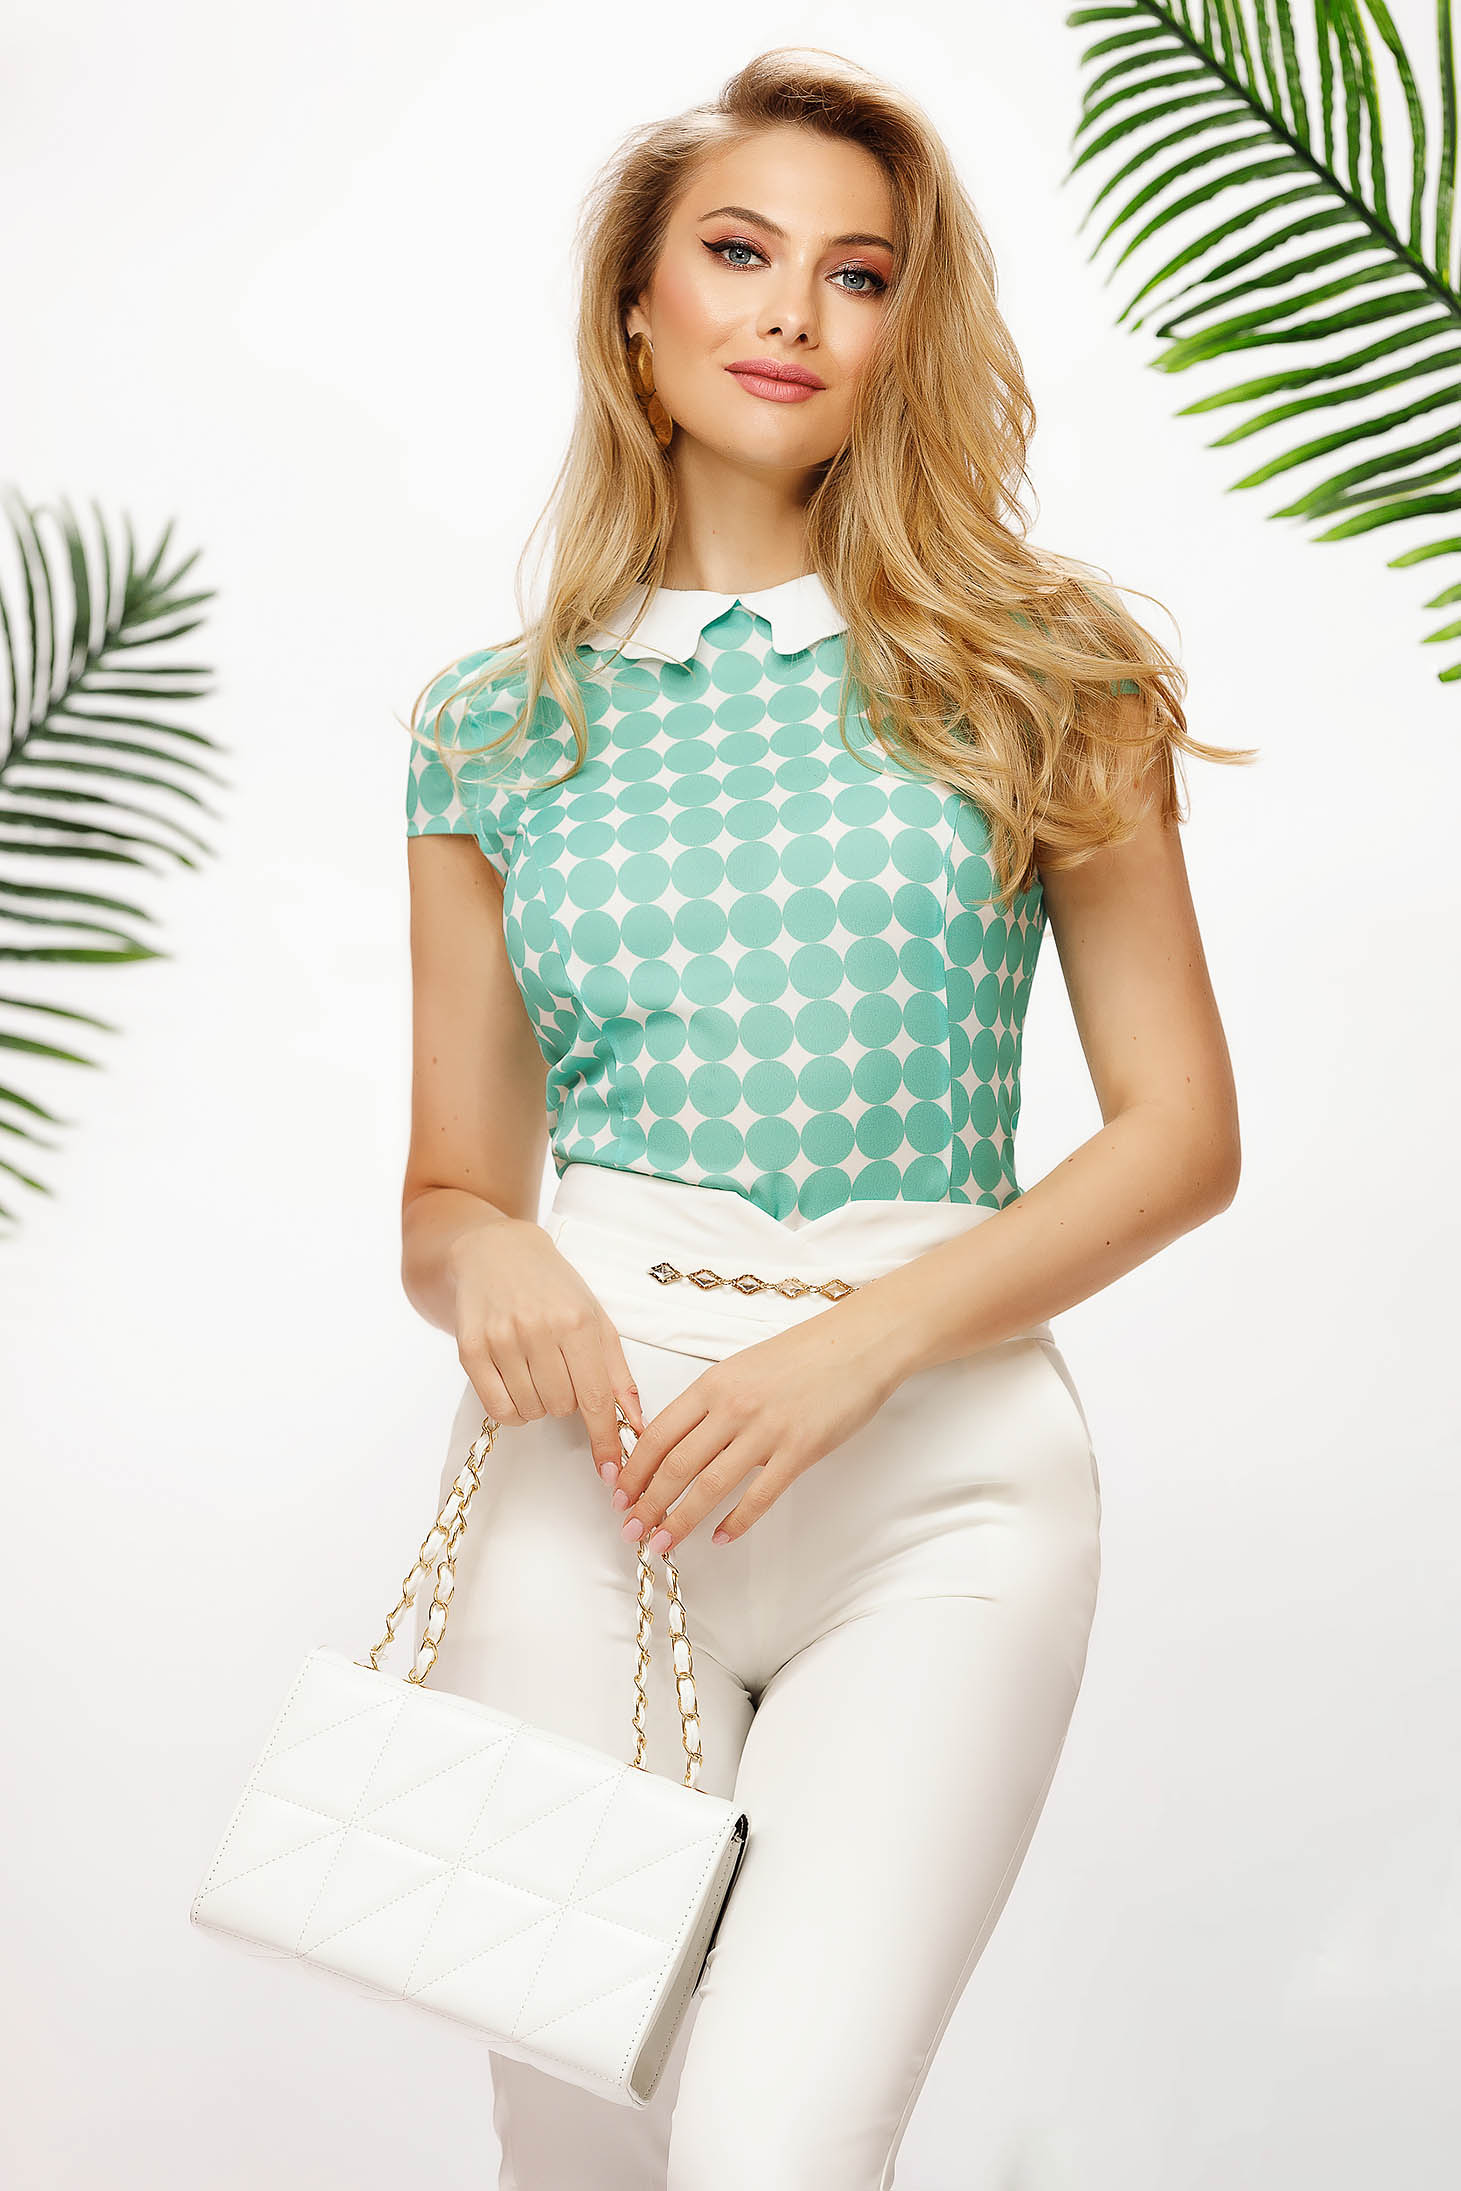 Women`s blouse office tented airy fabric dots print